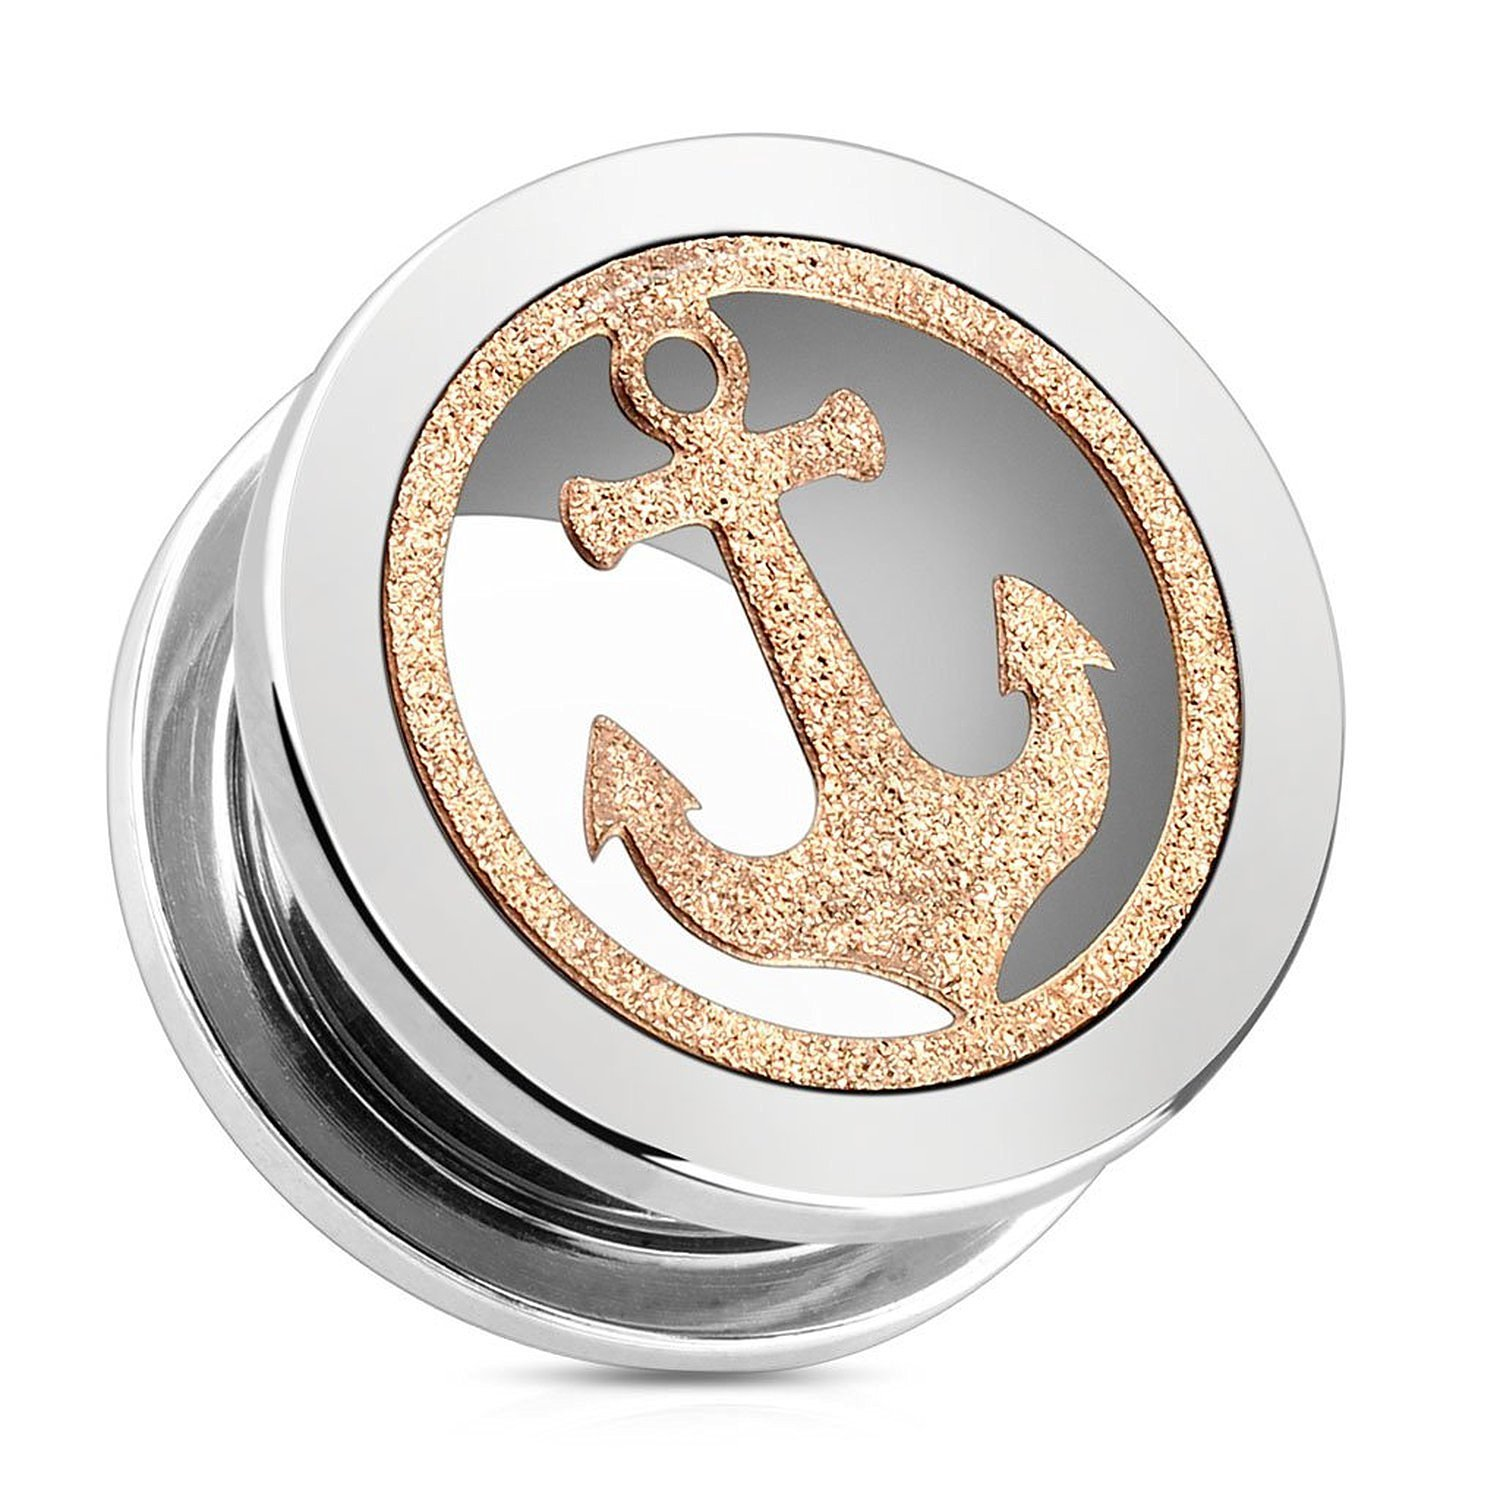 Rose Gold Glittery Anchor 316L Surgical Steel Screw Fit Tunnels (Sold as a Pair) (00G)